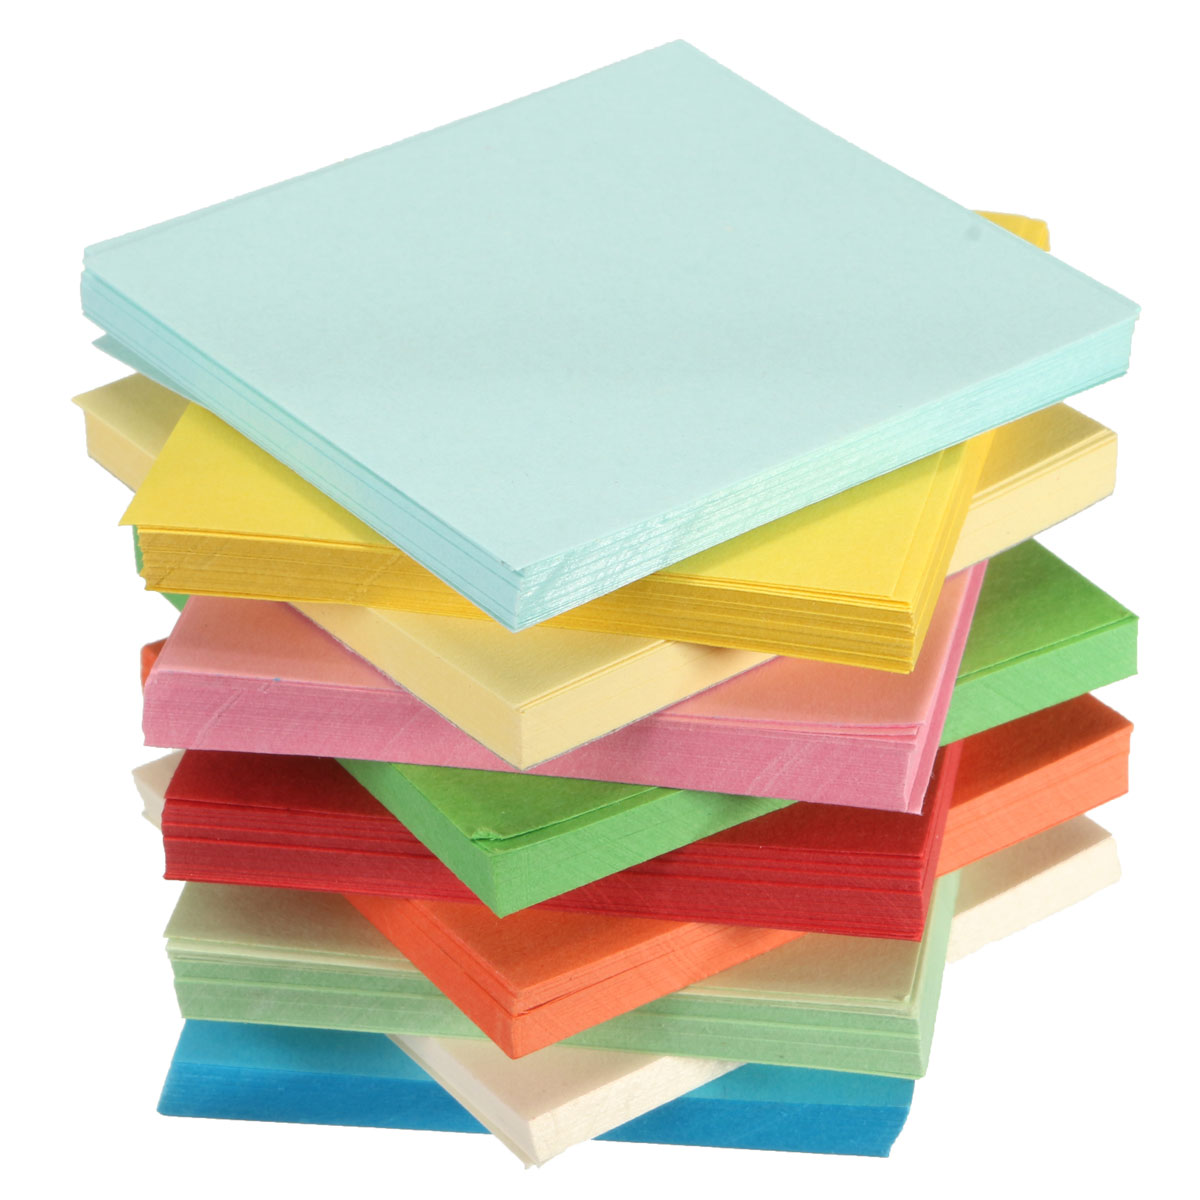 Double sided craft paper - 100 520 Sheets Square Double Sided Origami Folding